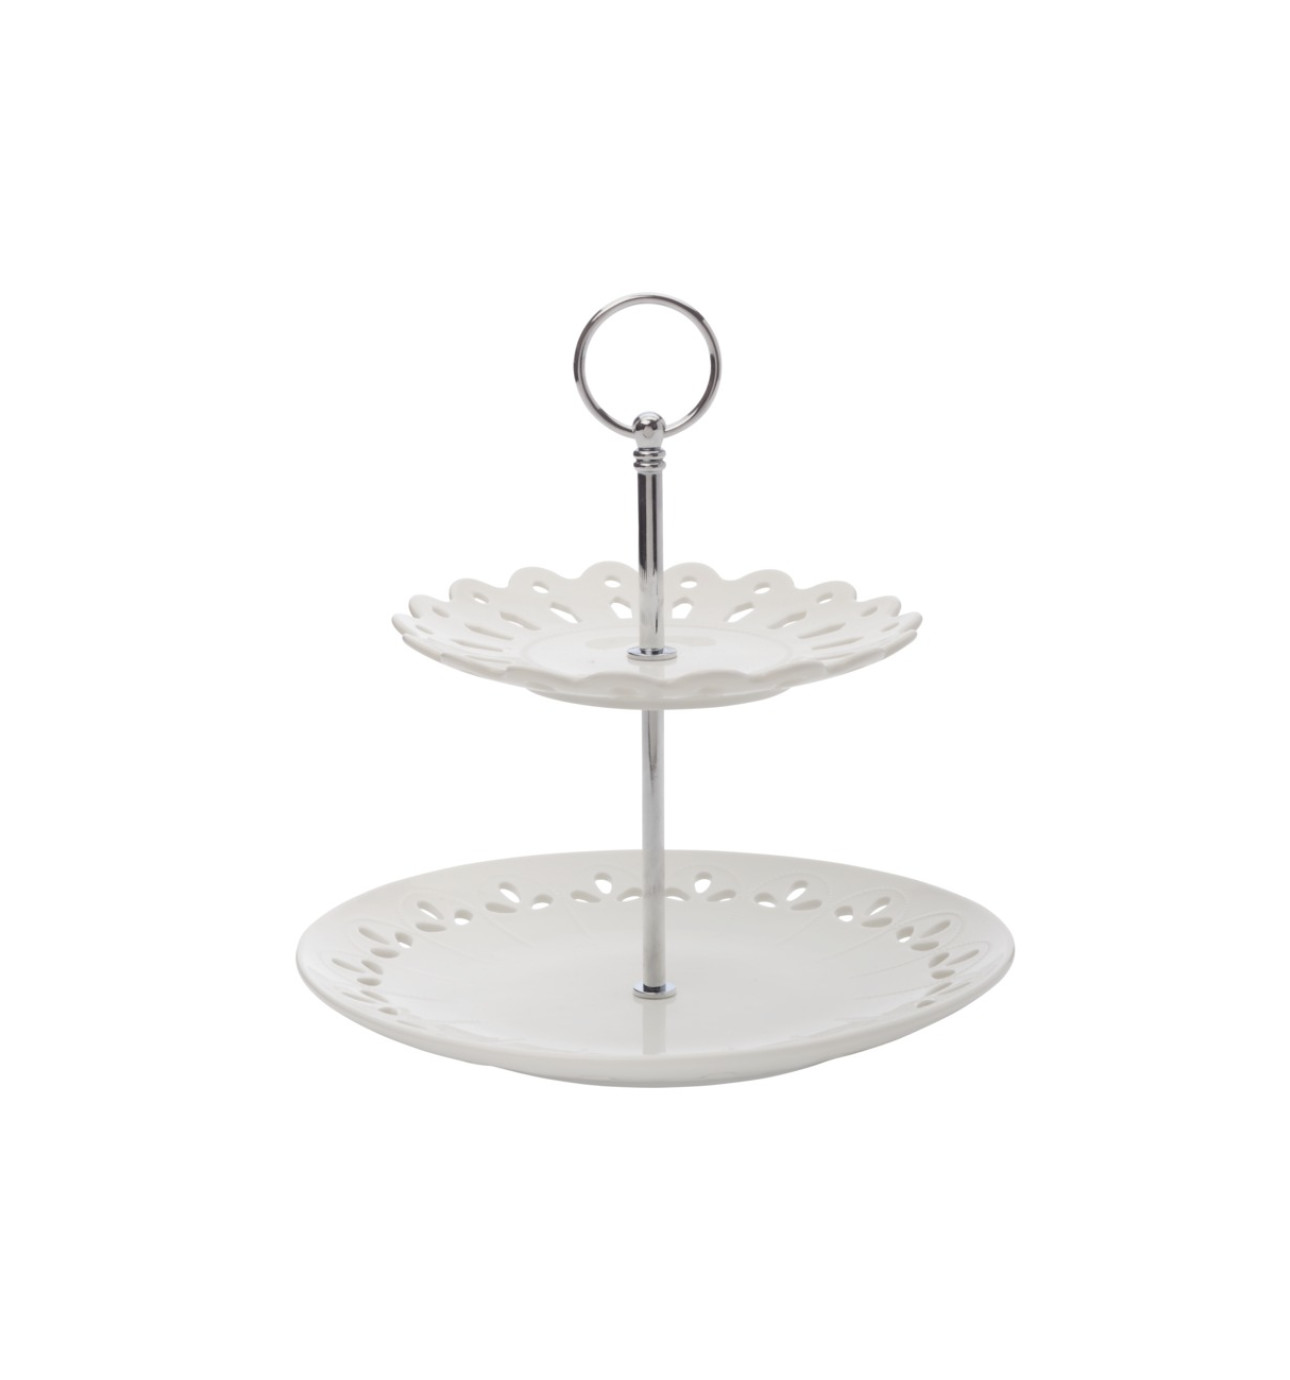 2 tiered cake stand